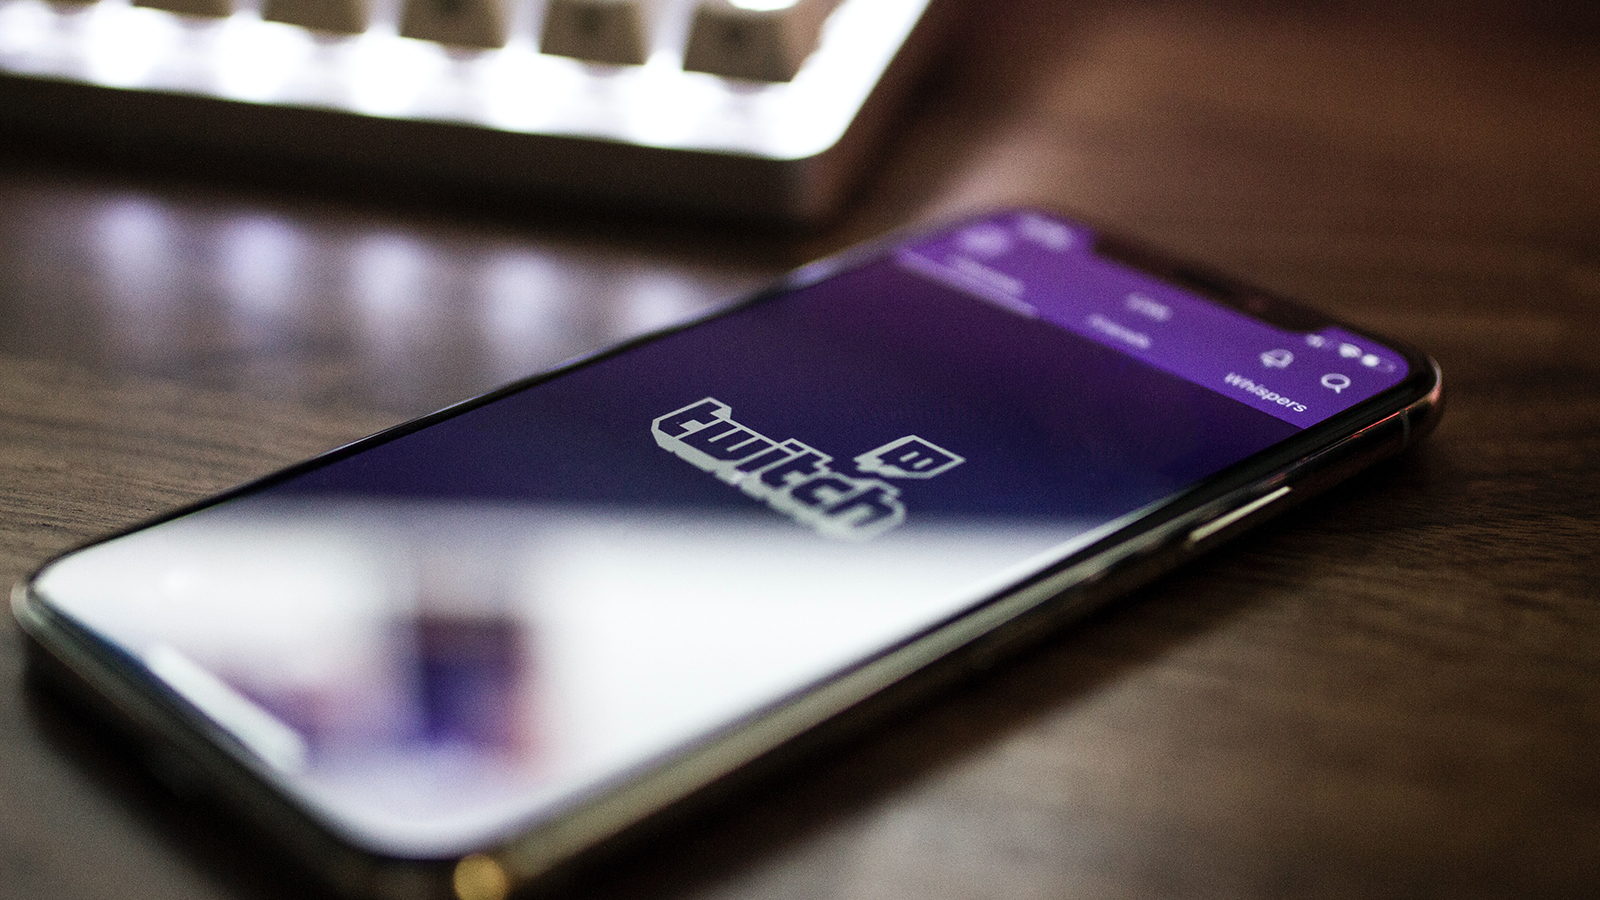 Twitch on mobile phone